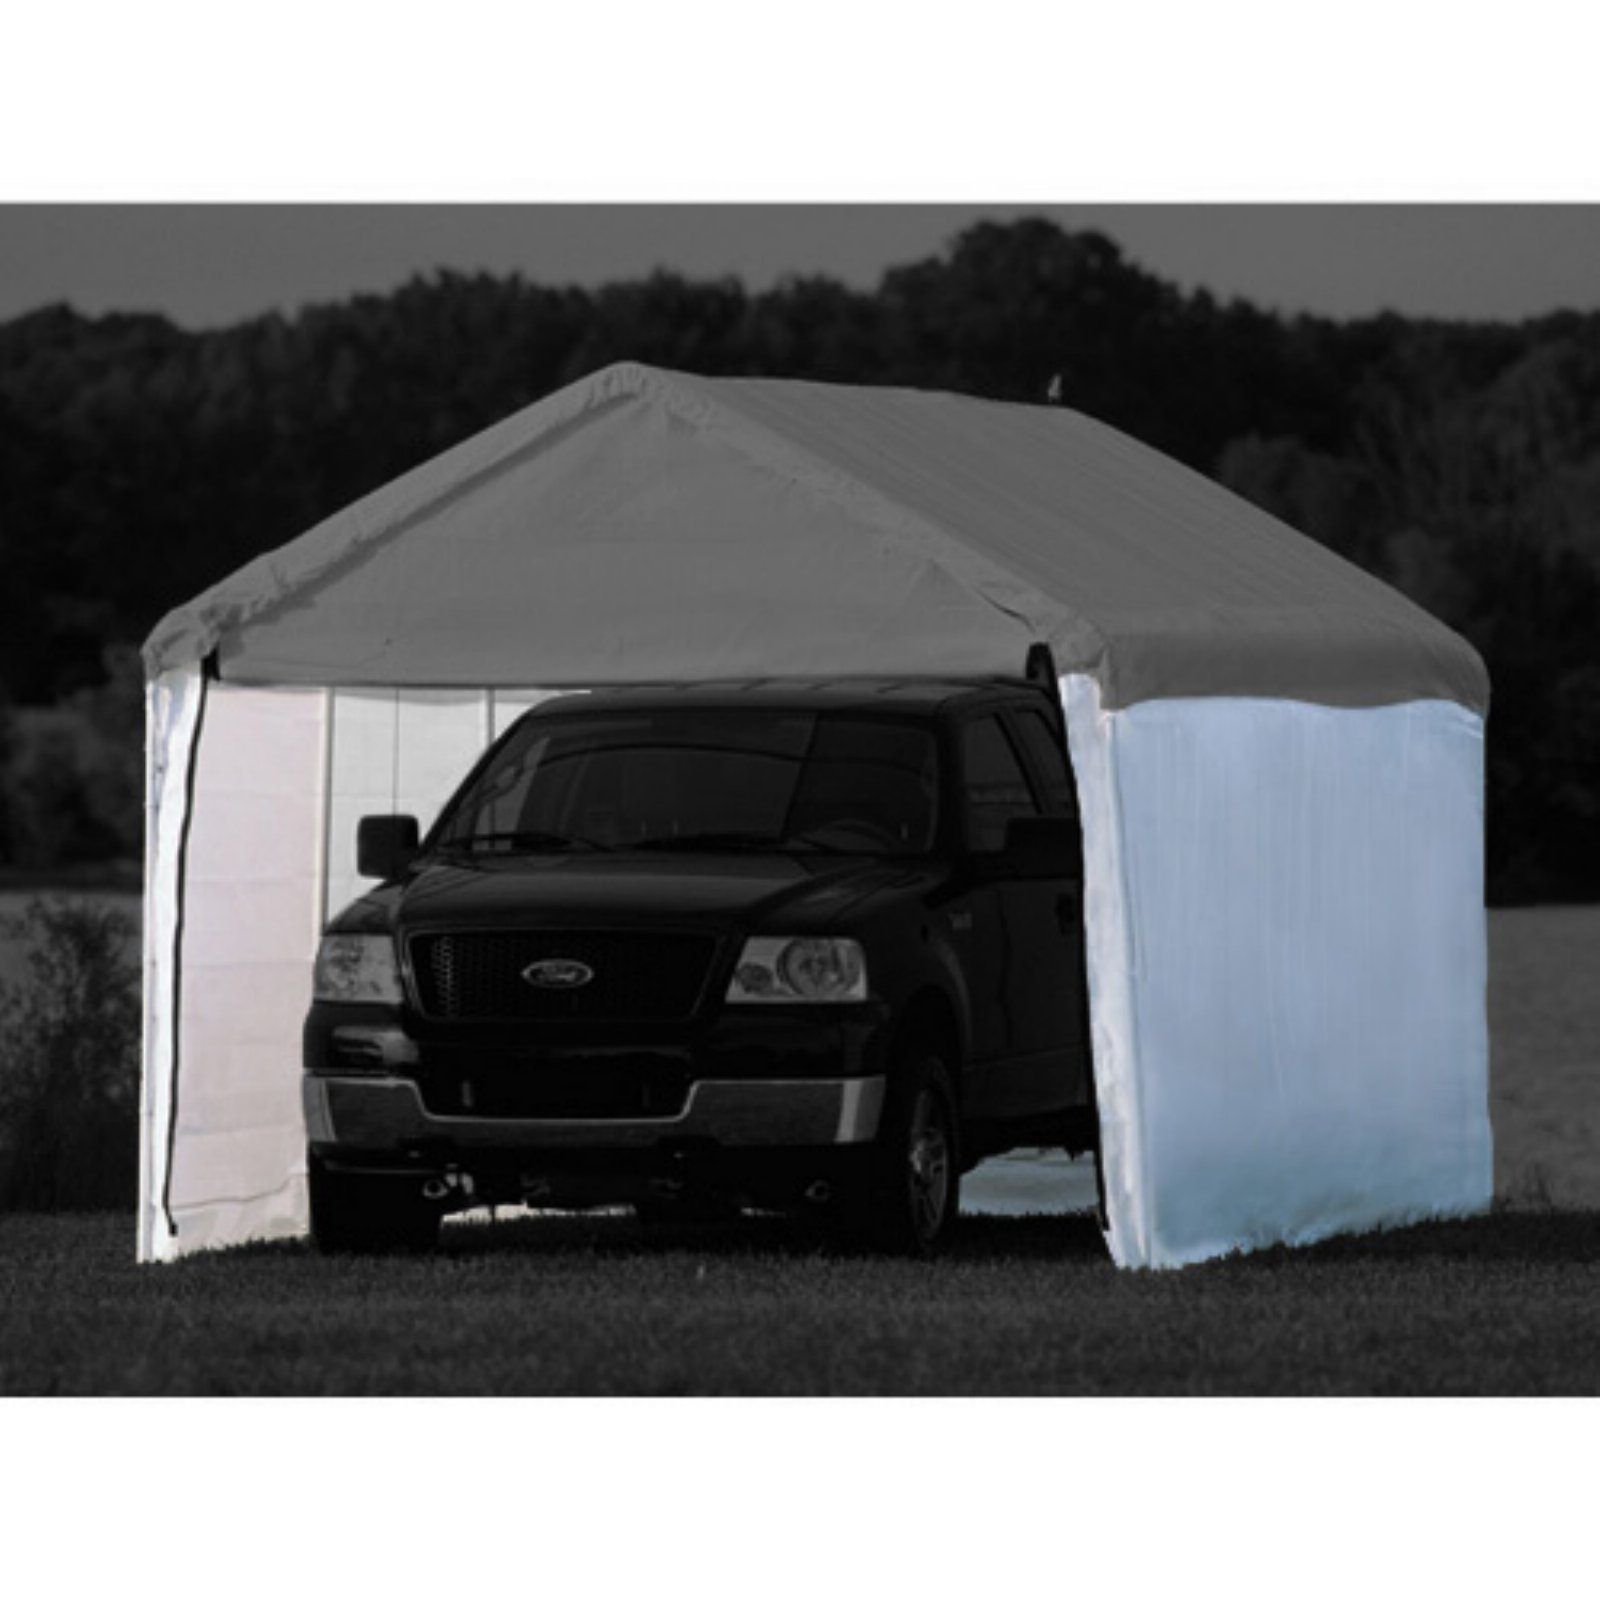 "Super Max 10' x 20' White Canopy Enclosure Kit Fits 2"" Frame"